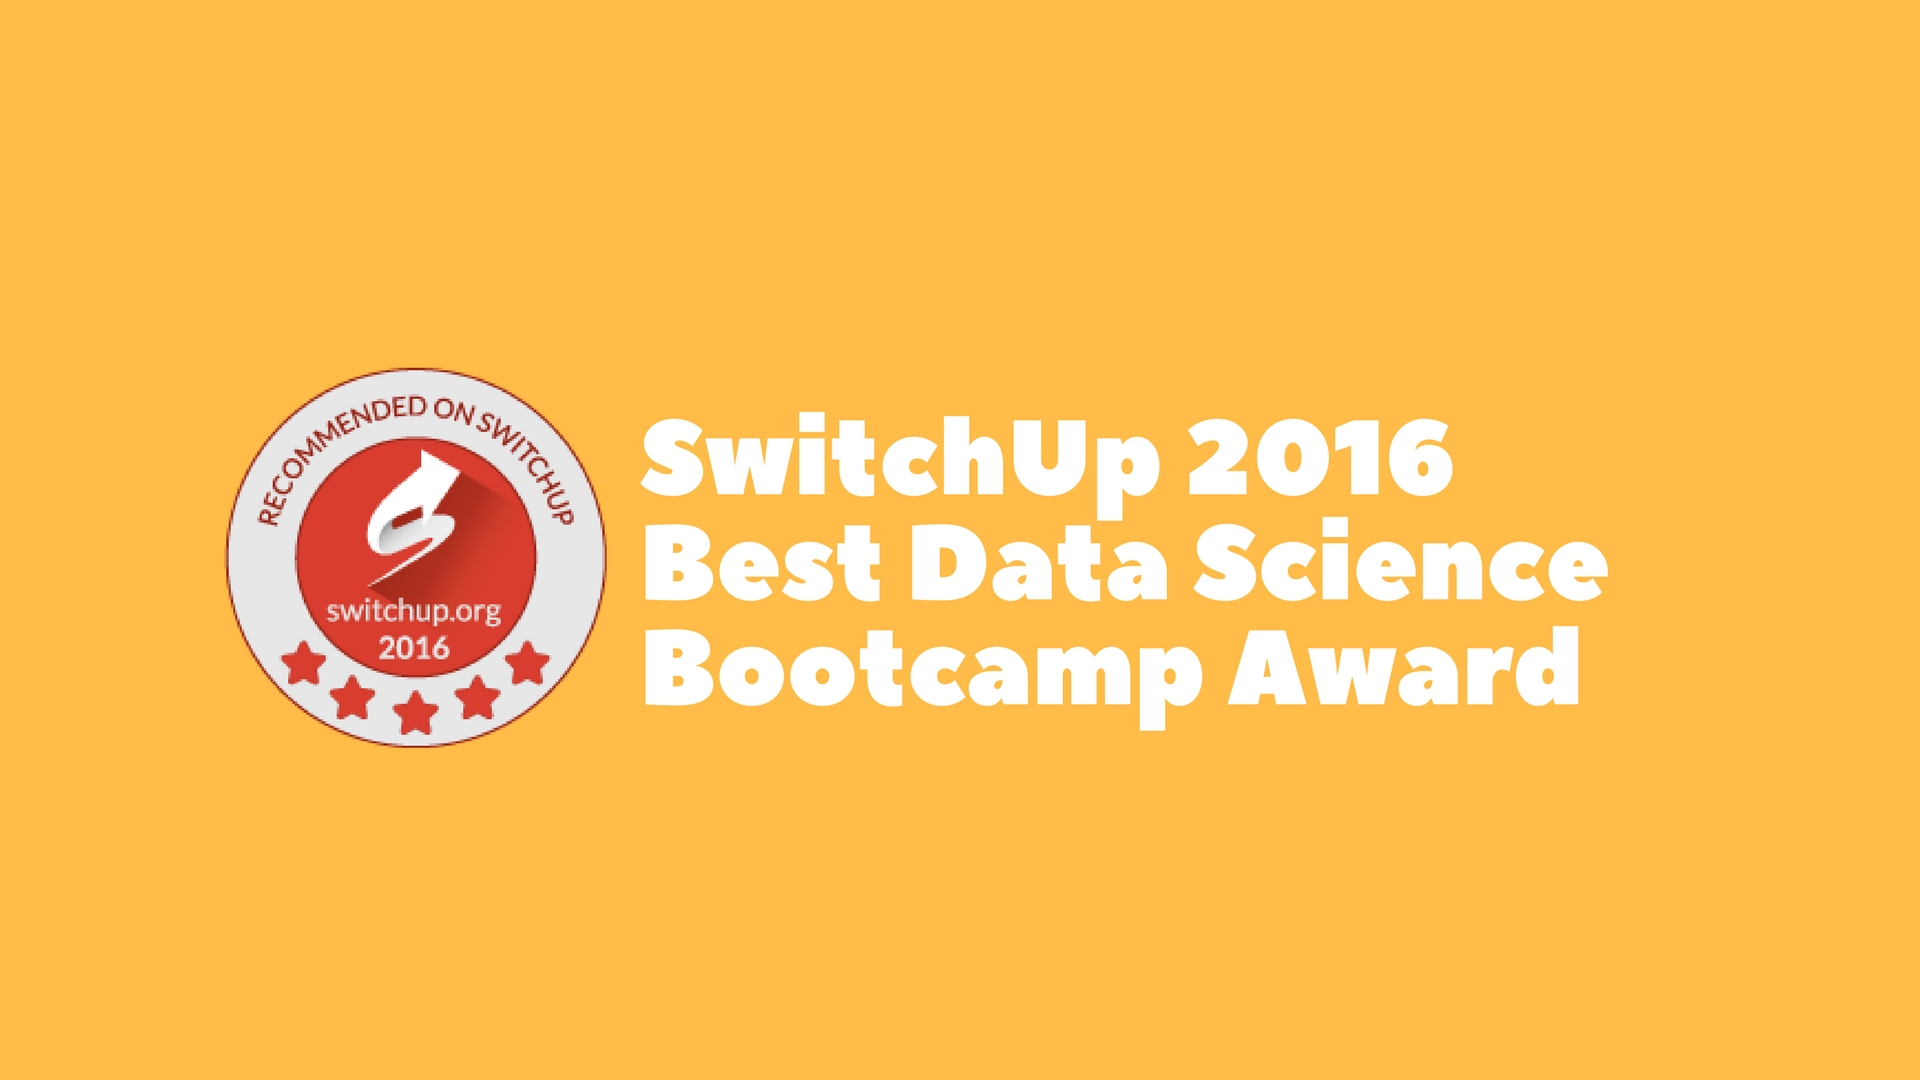 SwitchUp-2016-Best-Data-Science-Bootcamp-Award